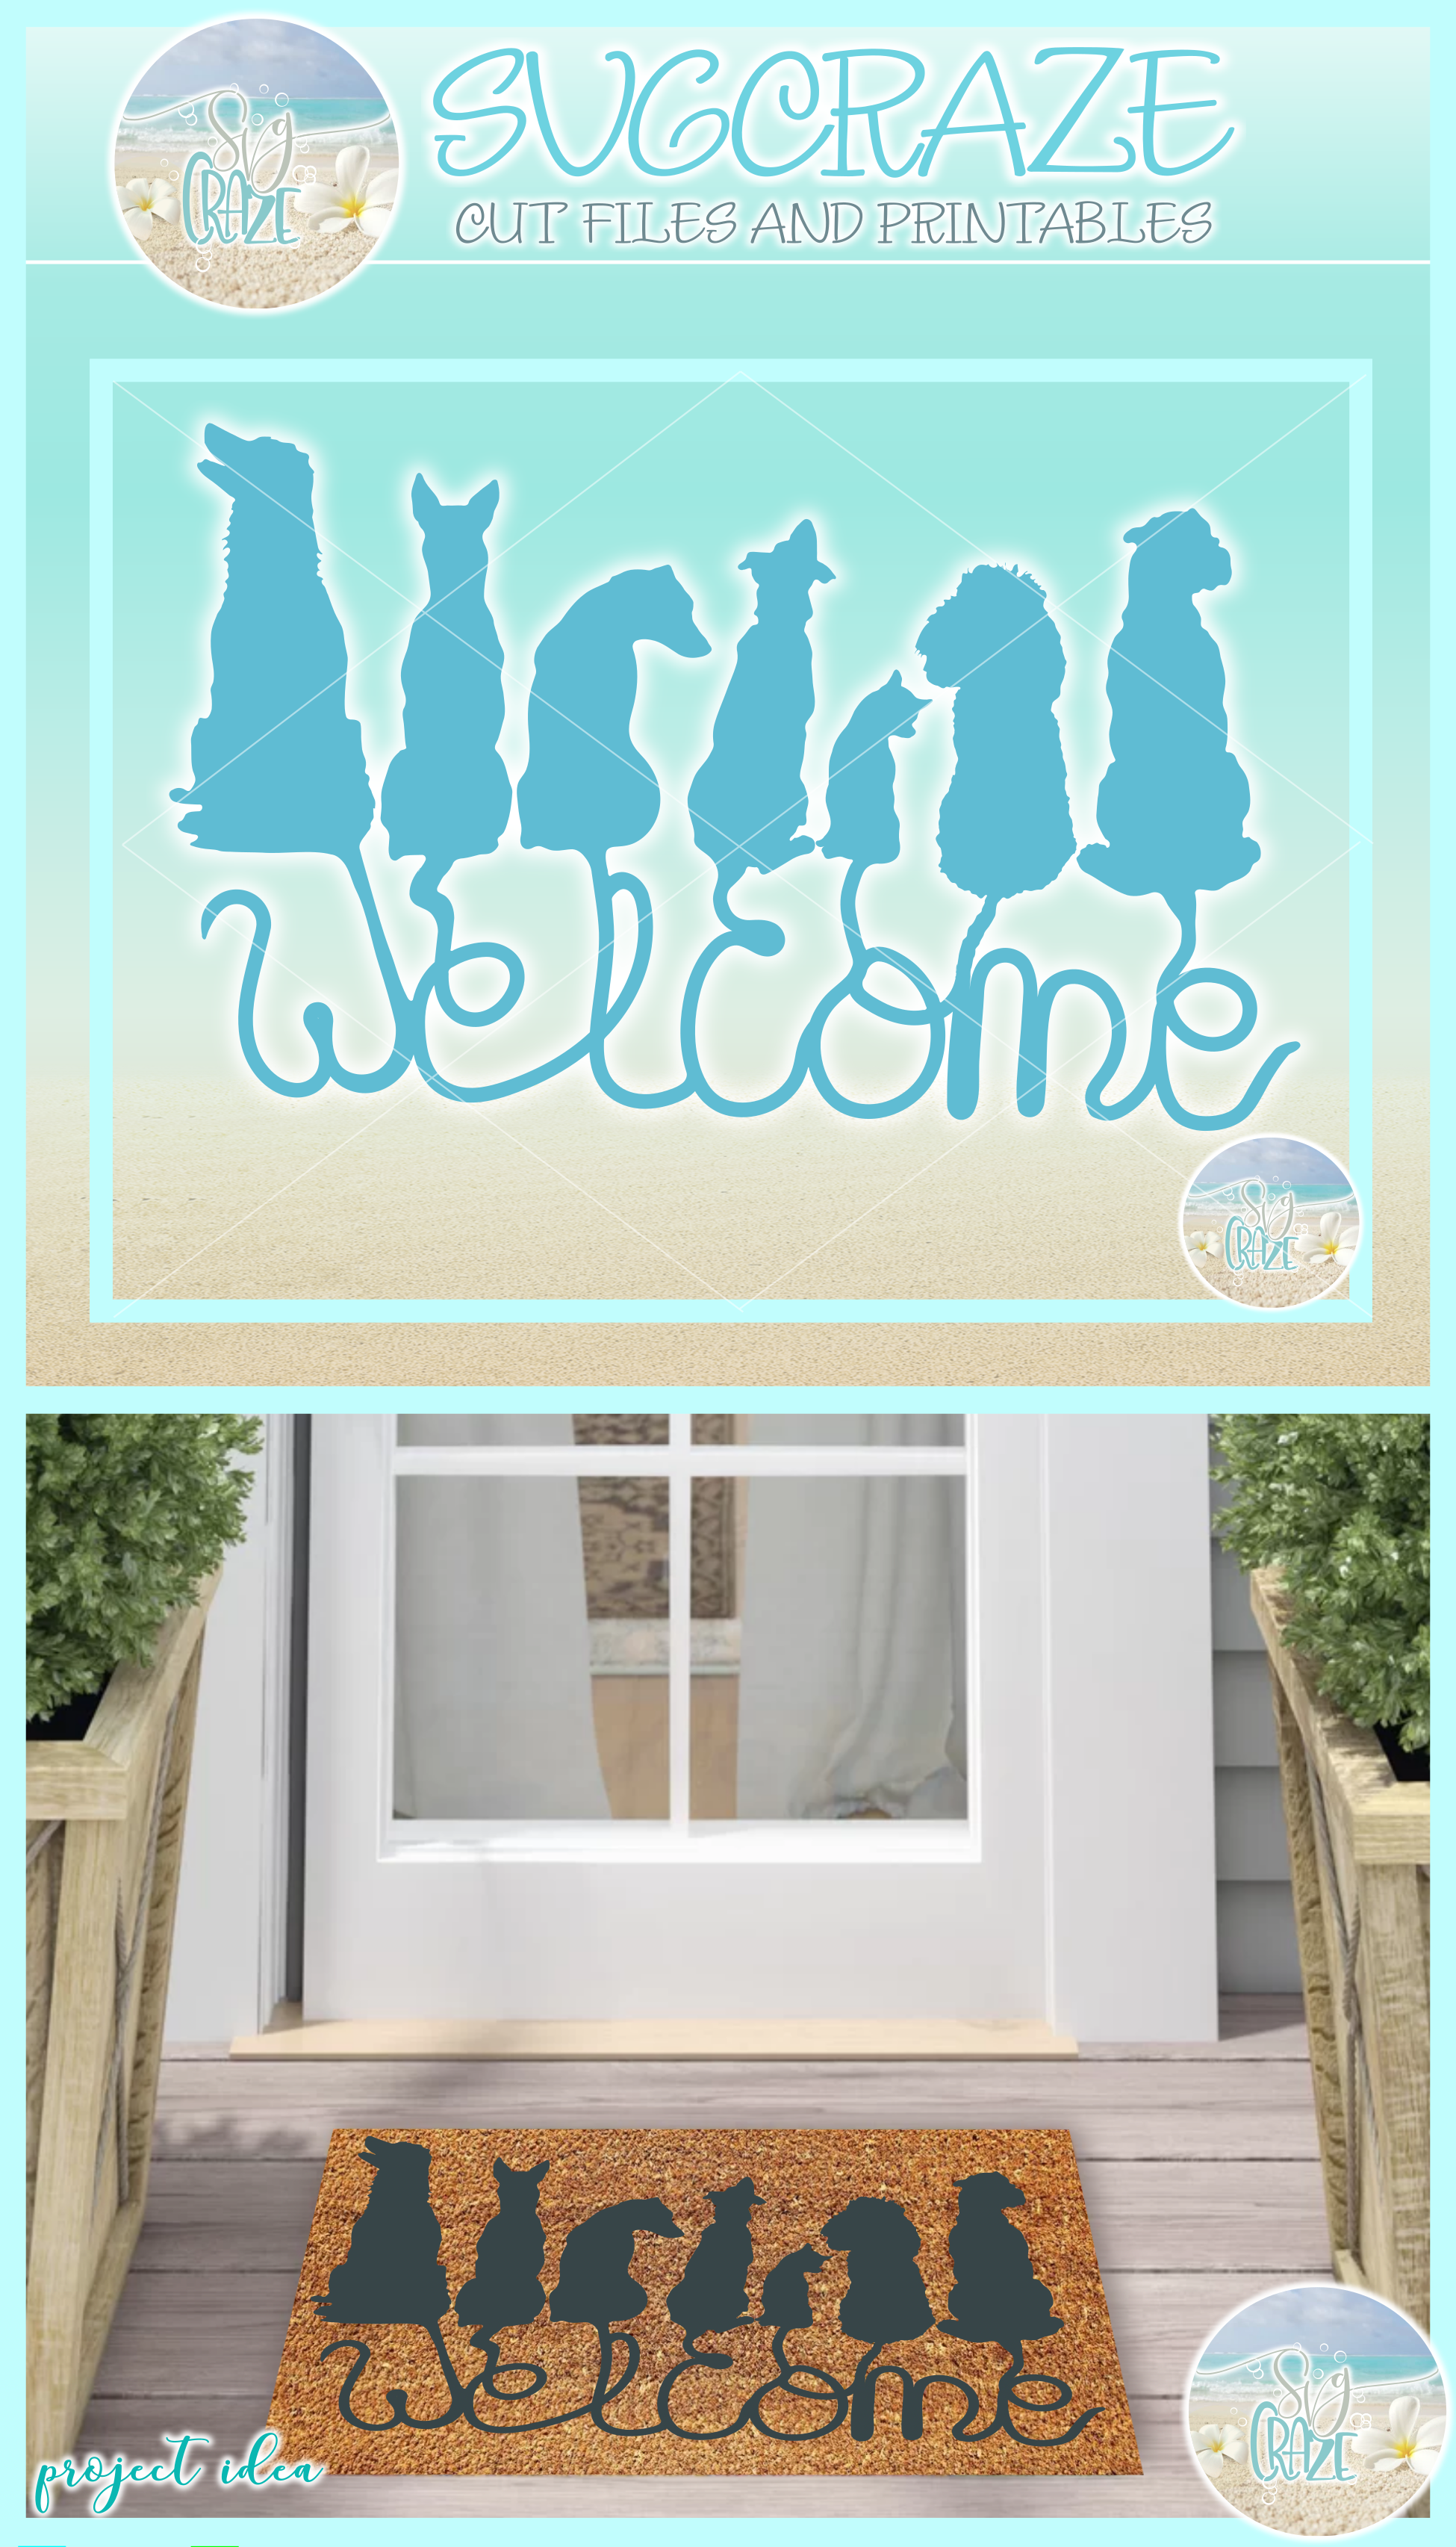 Dogs Welcome Coir Door Mat Design Svg Dxf Eps Png Pdf Files example image 4